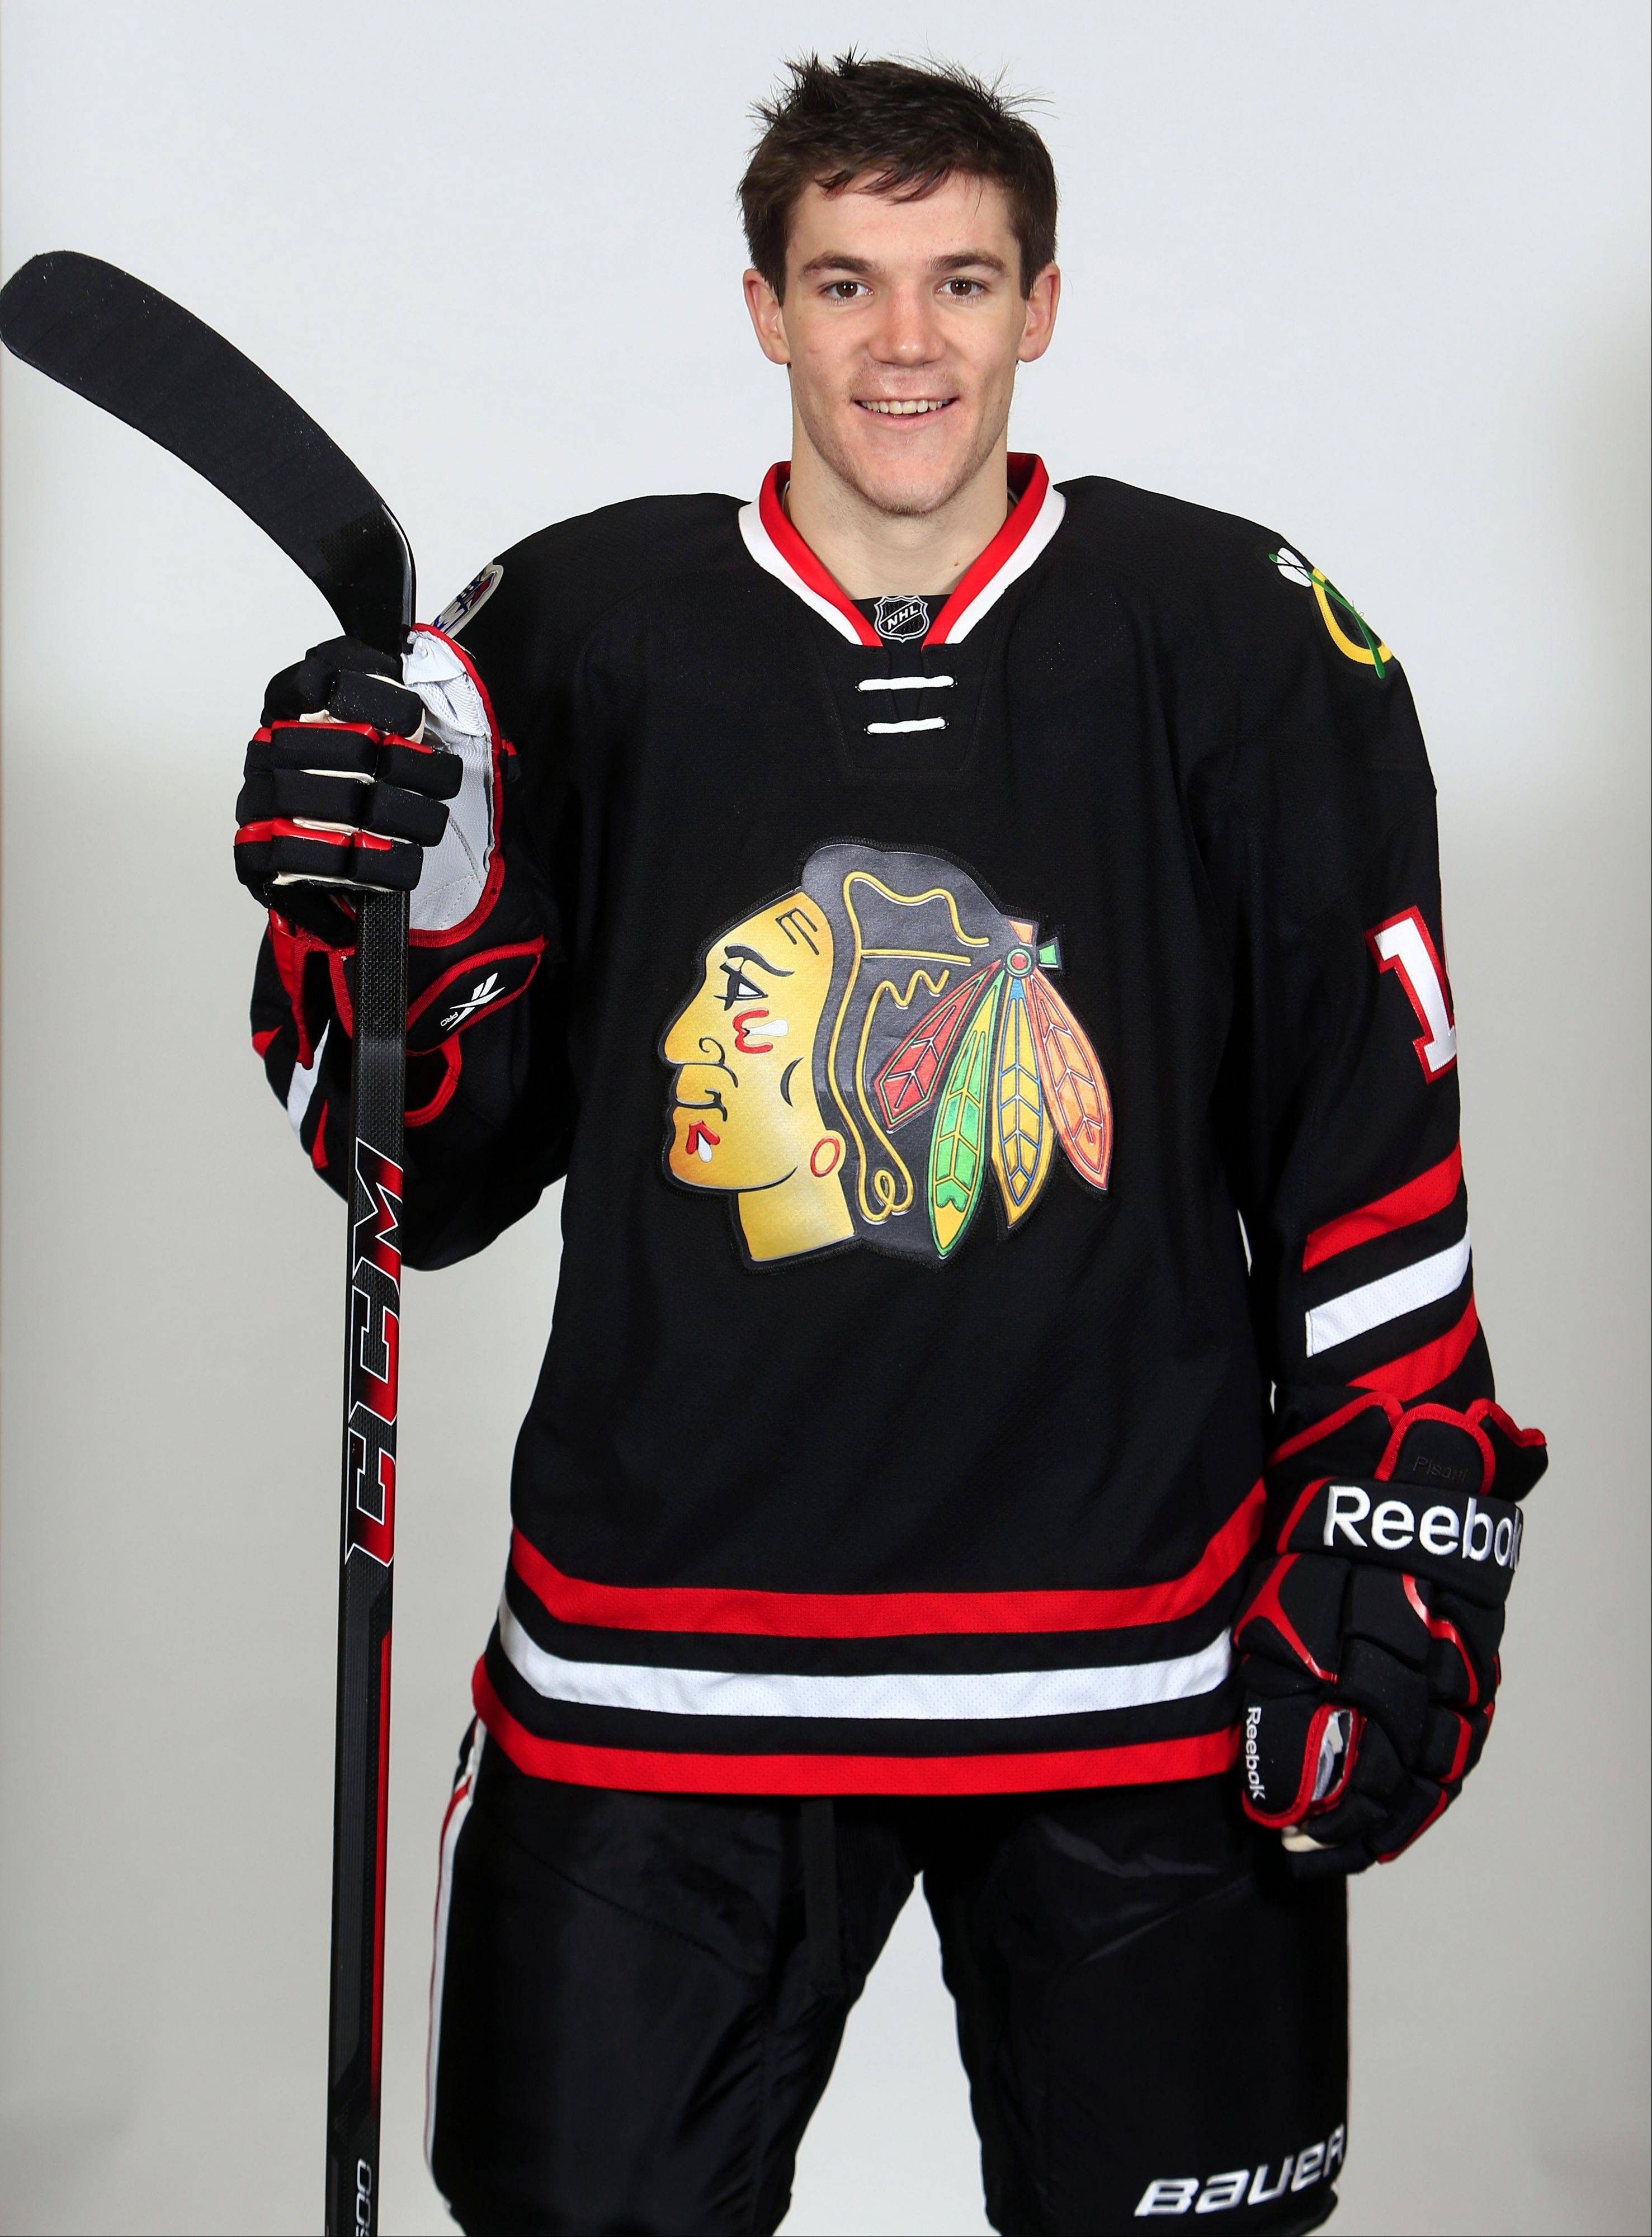 Photo courtesy of Chicago BlackhawksAndrew Shaw models the new Blackhawks jersey the team will wear for its March 1 game vs. the Pittsburgh Penguins at Soldier Field. The jersey features chrome-treated logo designs.